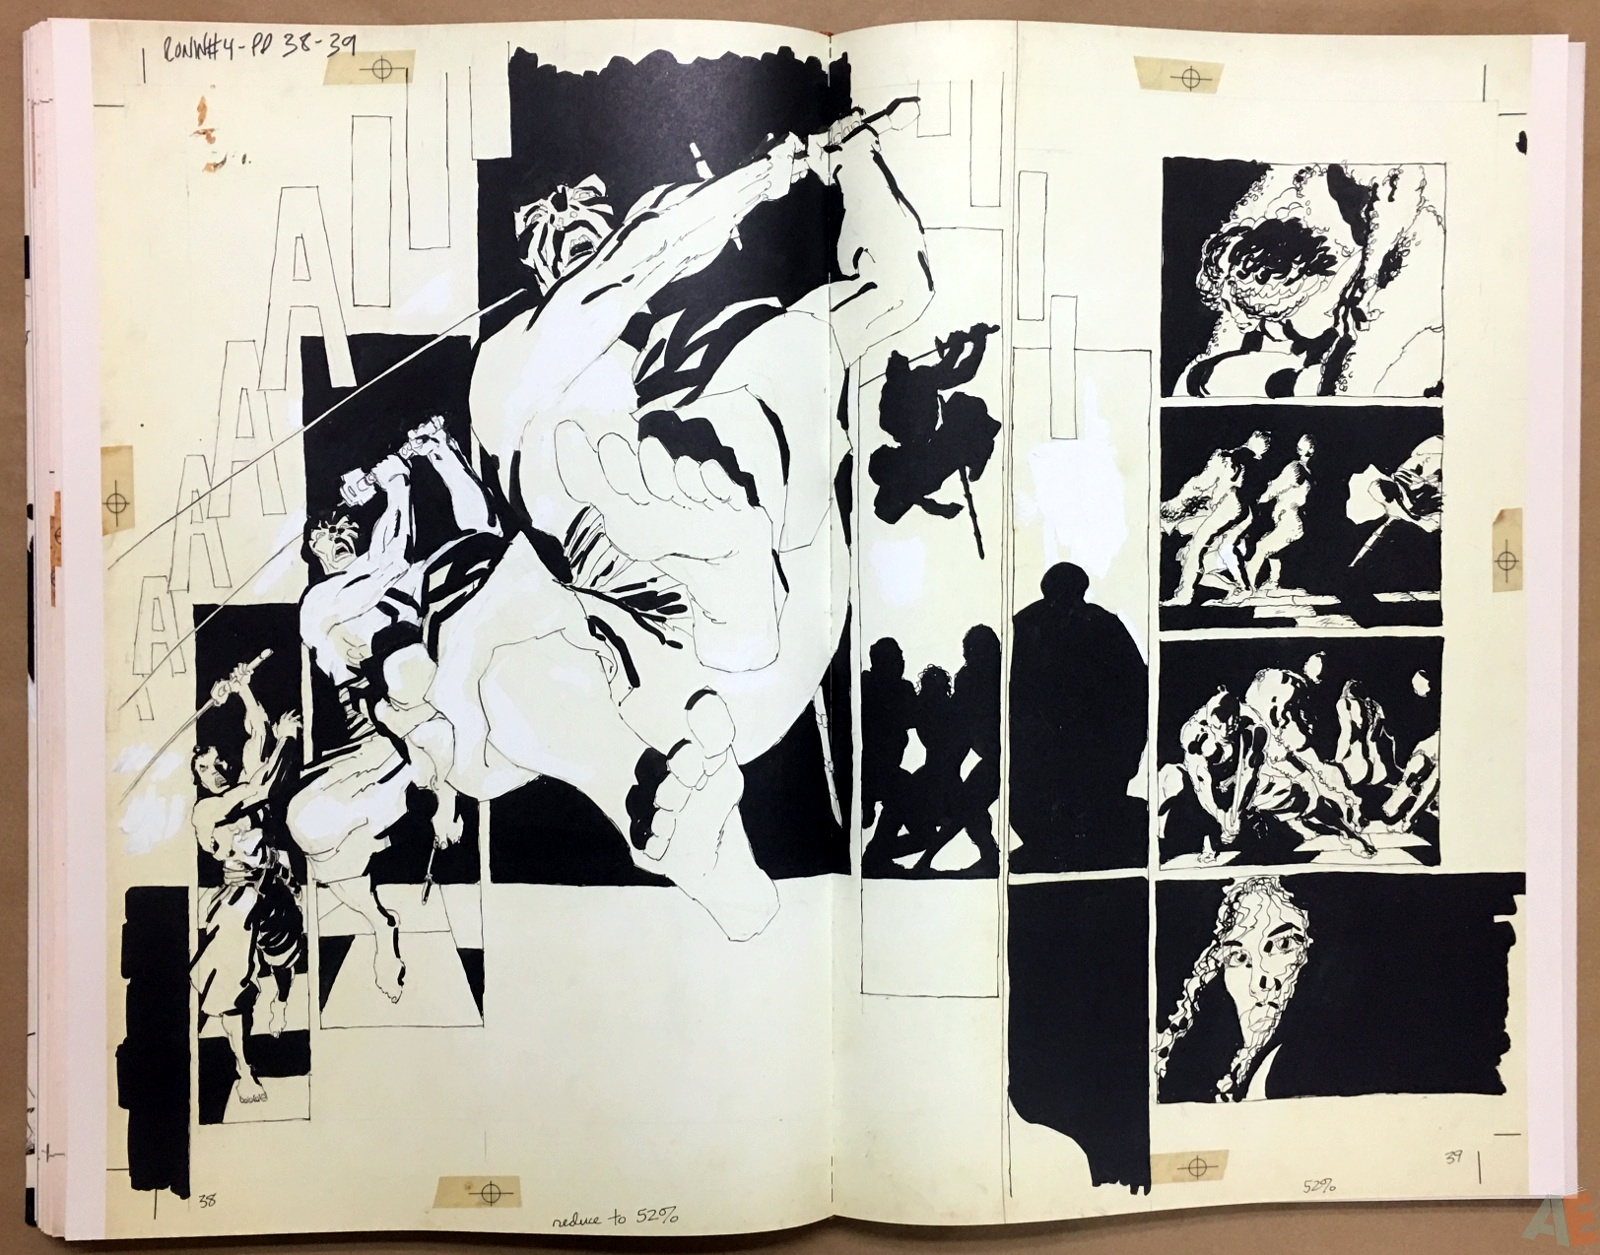 Frank Miller's Ronin Gallery Edition 34